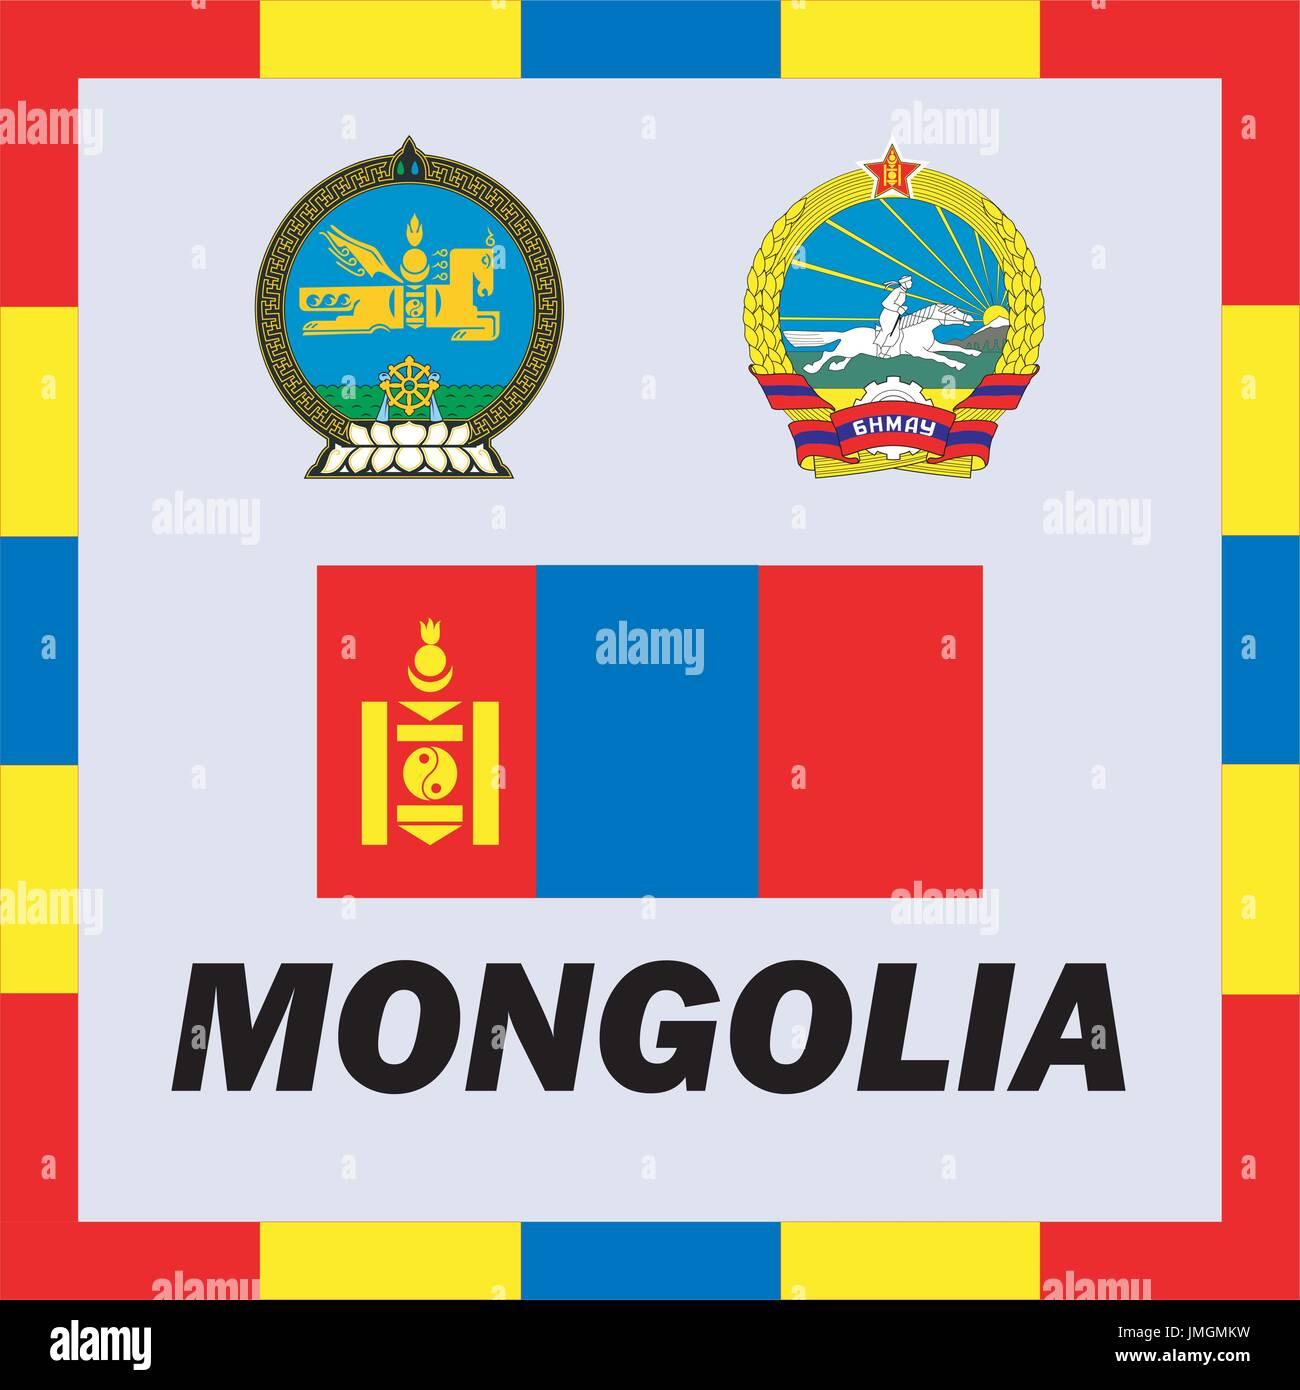 Official ensigns, flag and coat of arm of Mongolia - Stock Vector